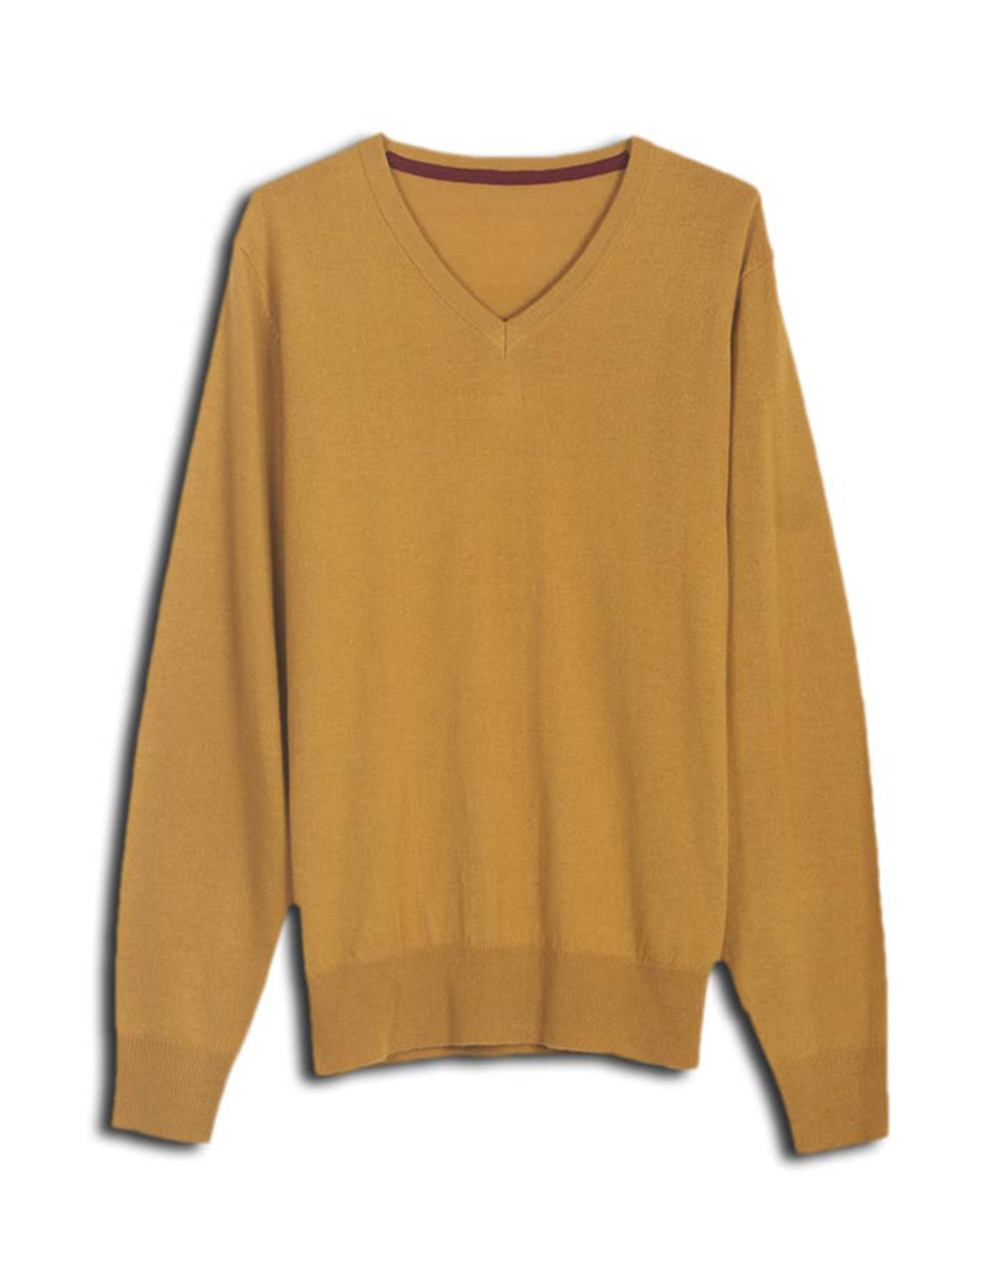 Mustard plain jersey - Backside